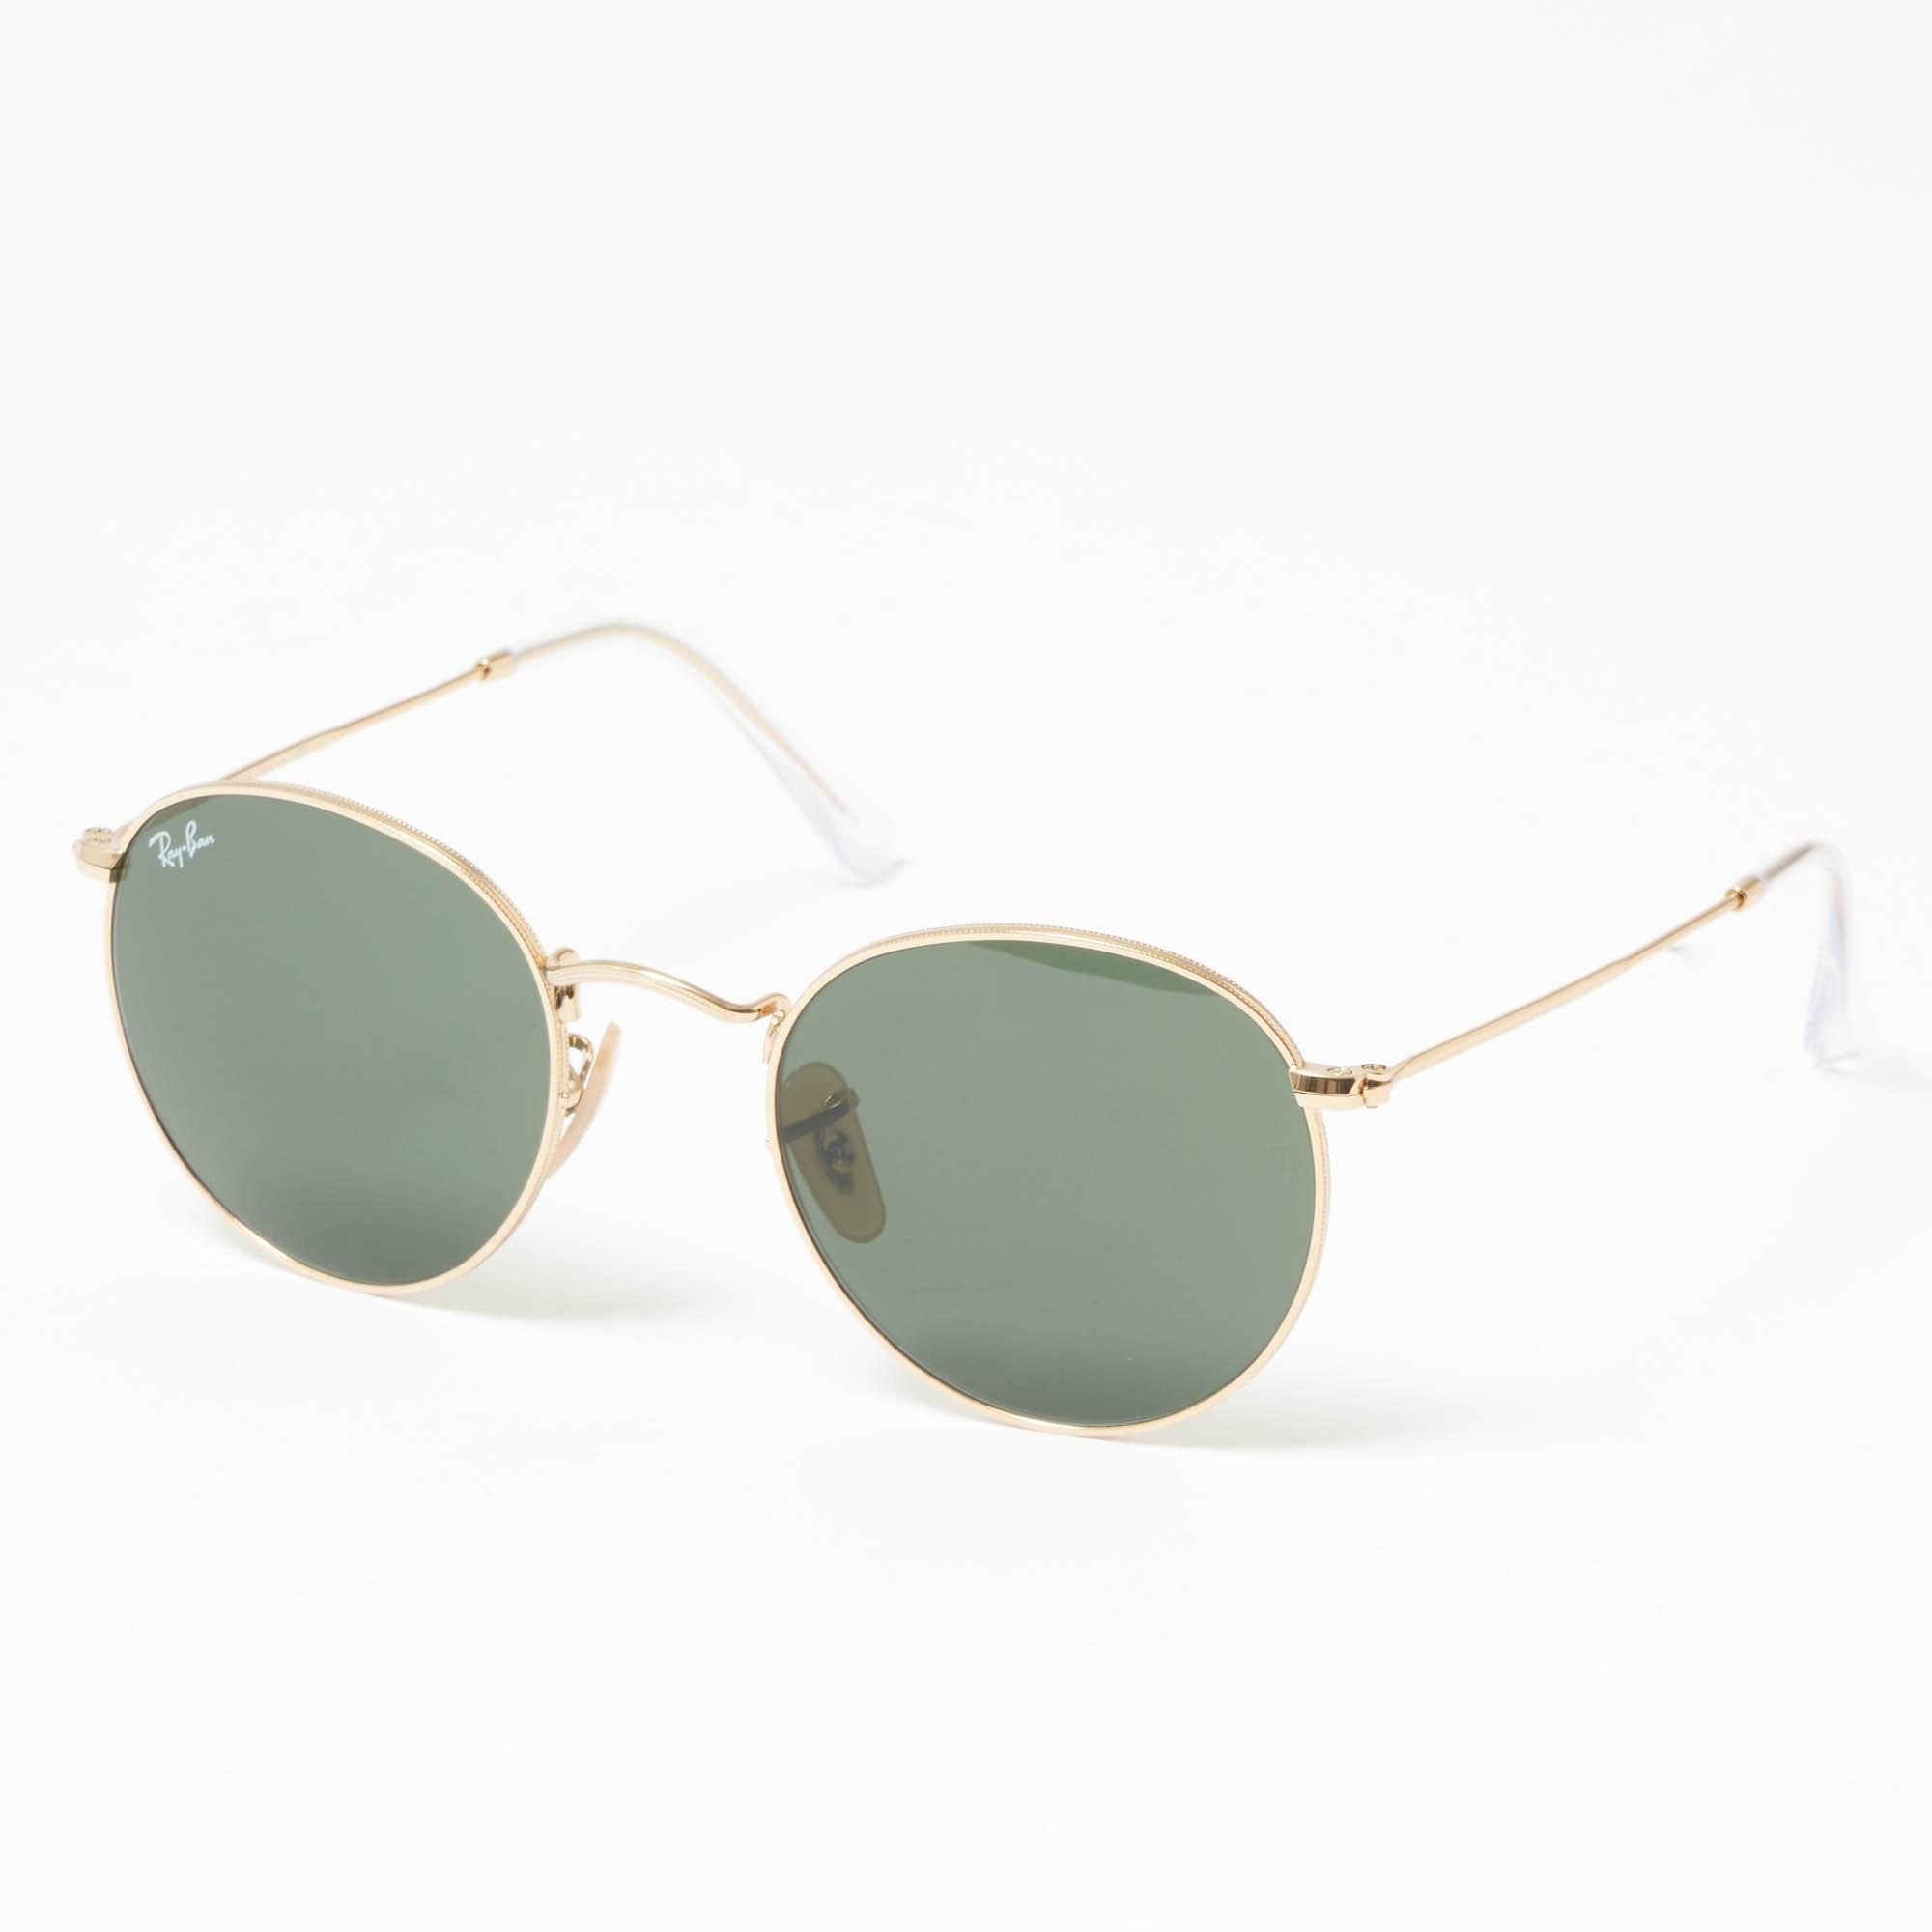 c282526c03 Ray-Ban. Men s Metallic Gold Round Metal Sunglasses - Green Classic G-15  Lenses